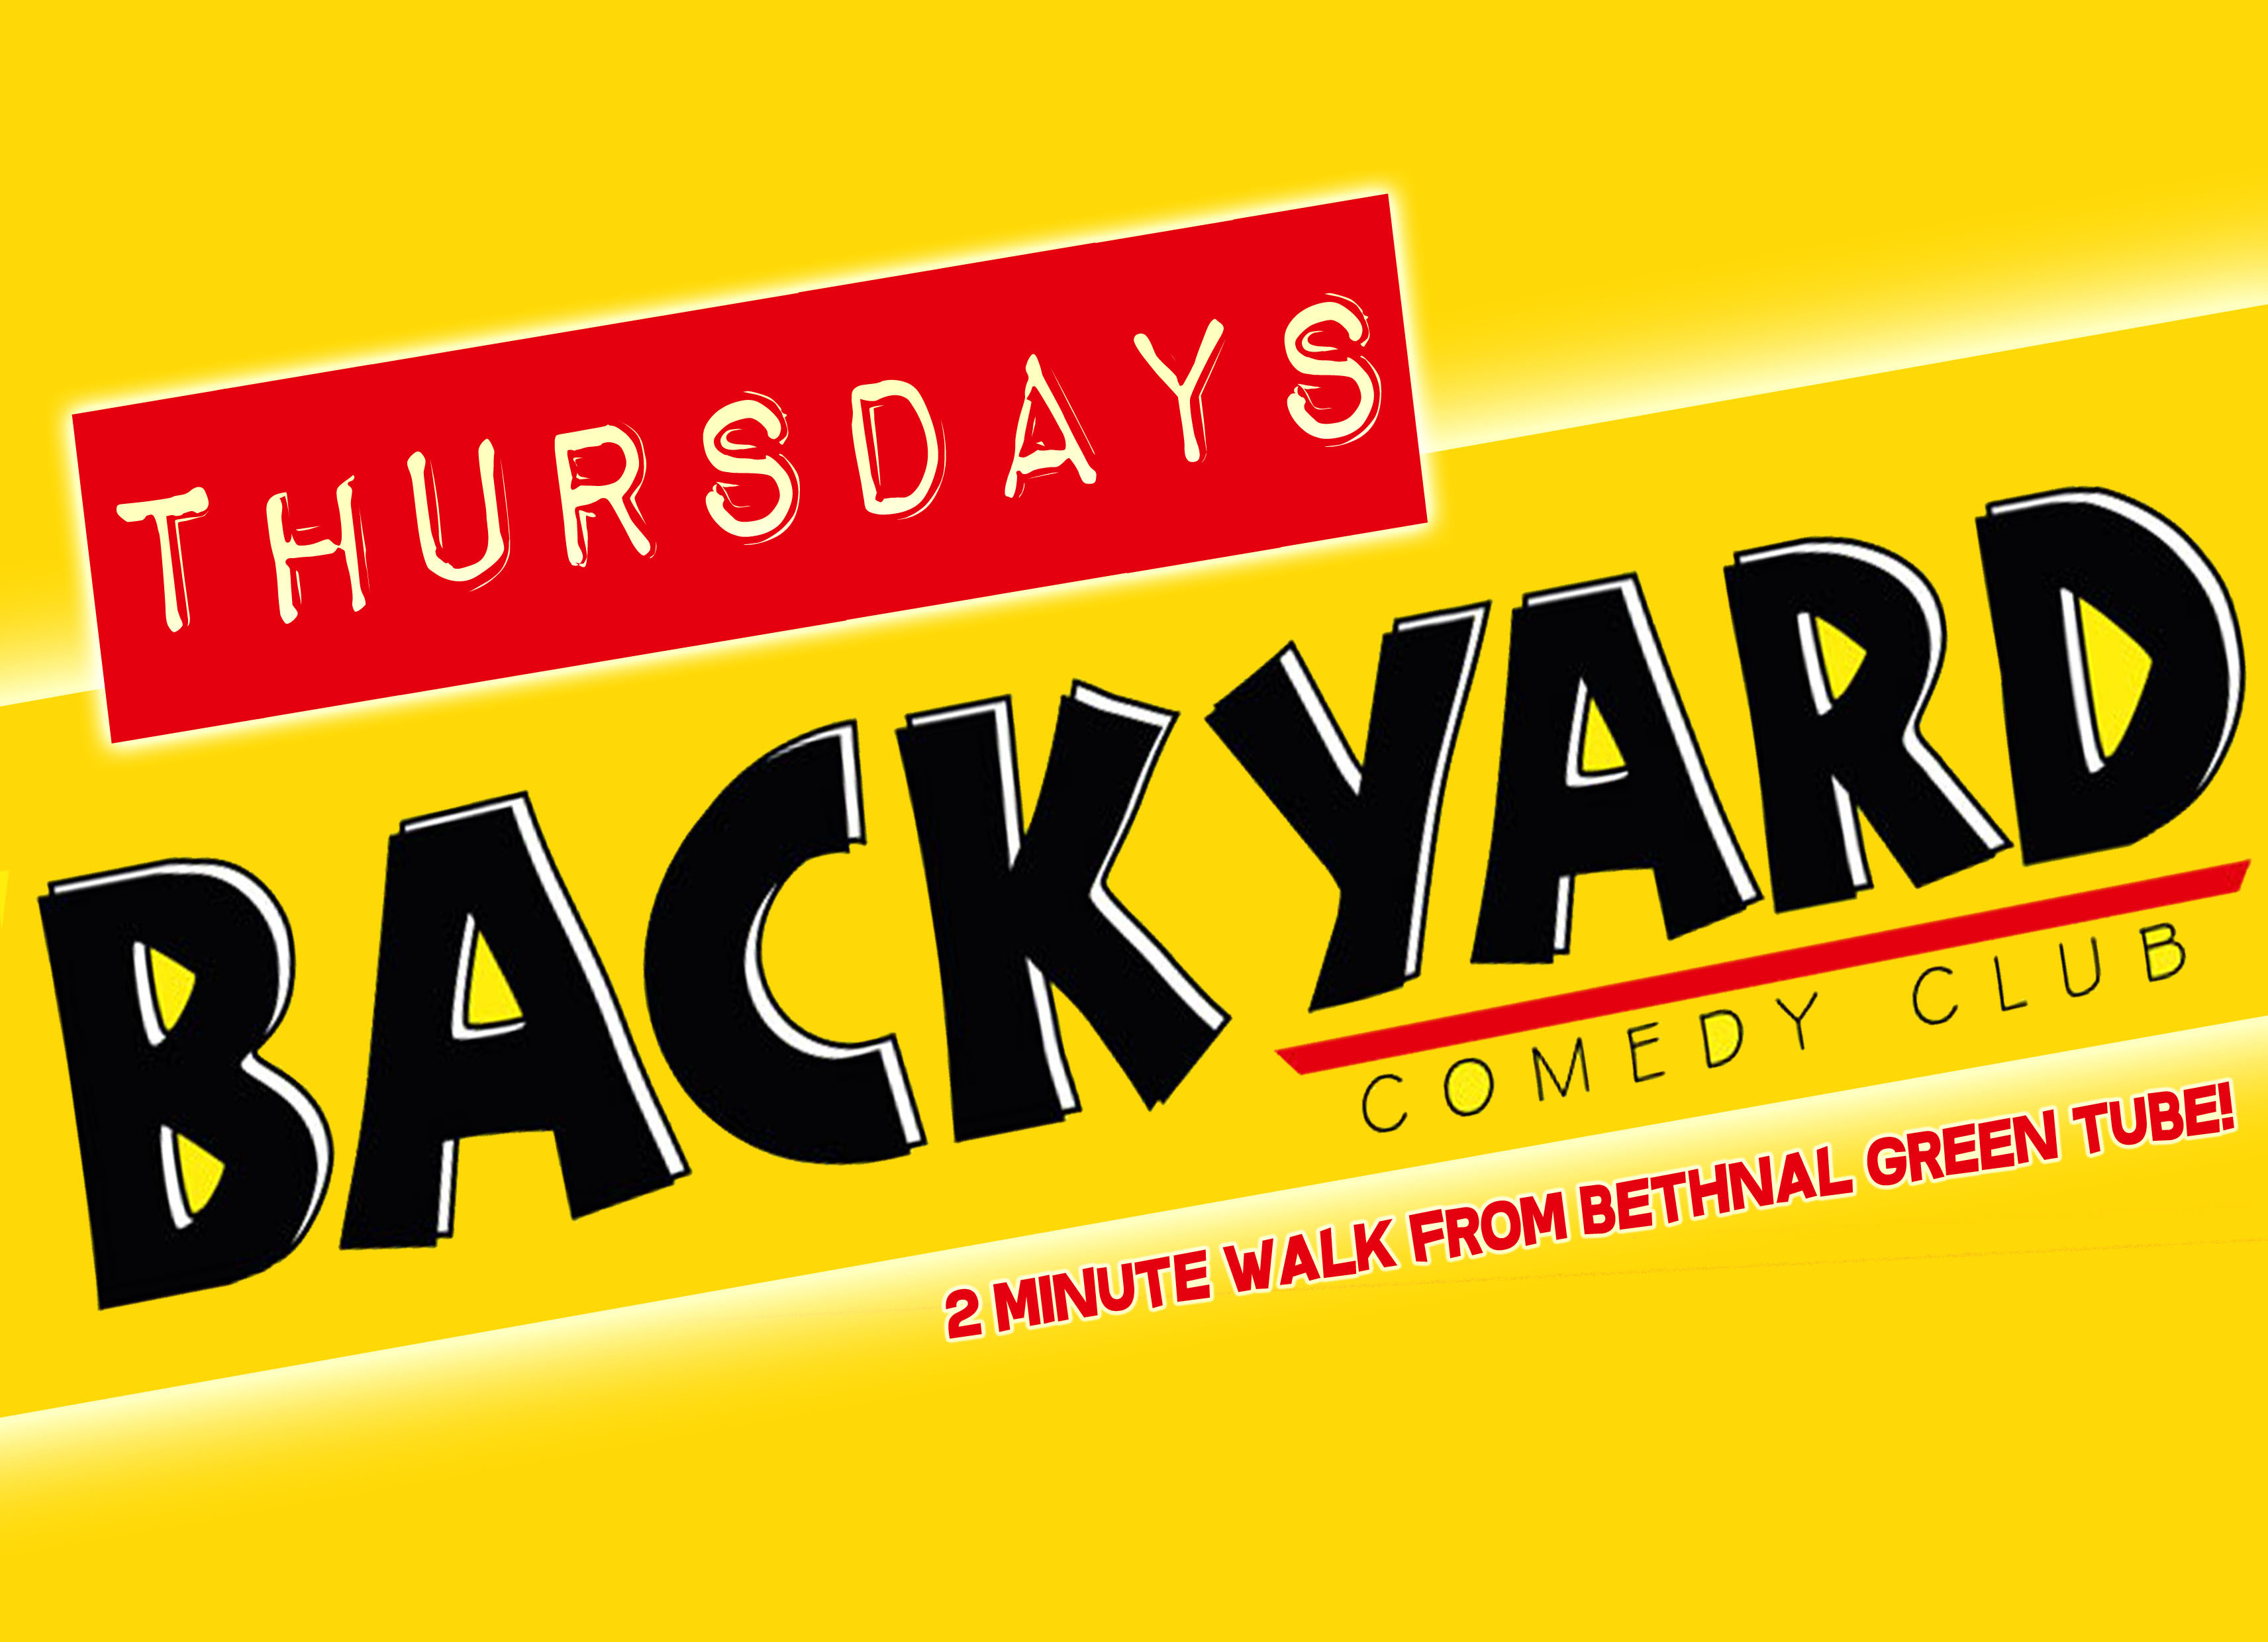 Backyard comedy club thursdays jokepit comedy club